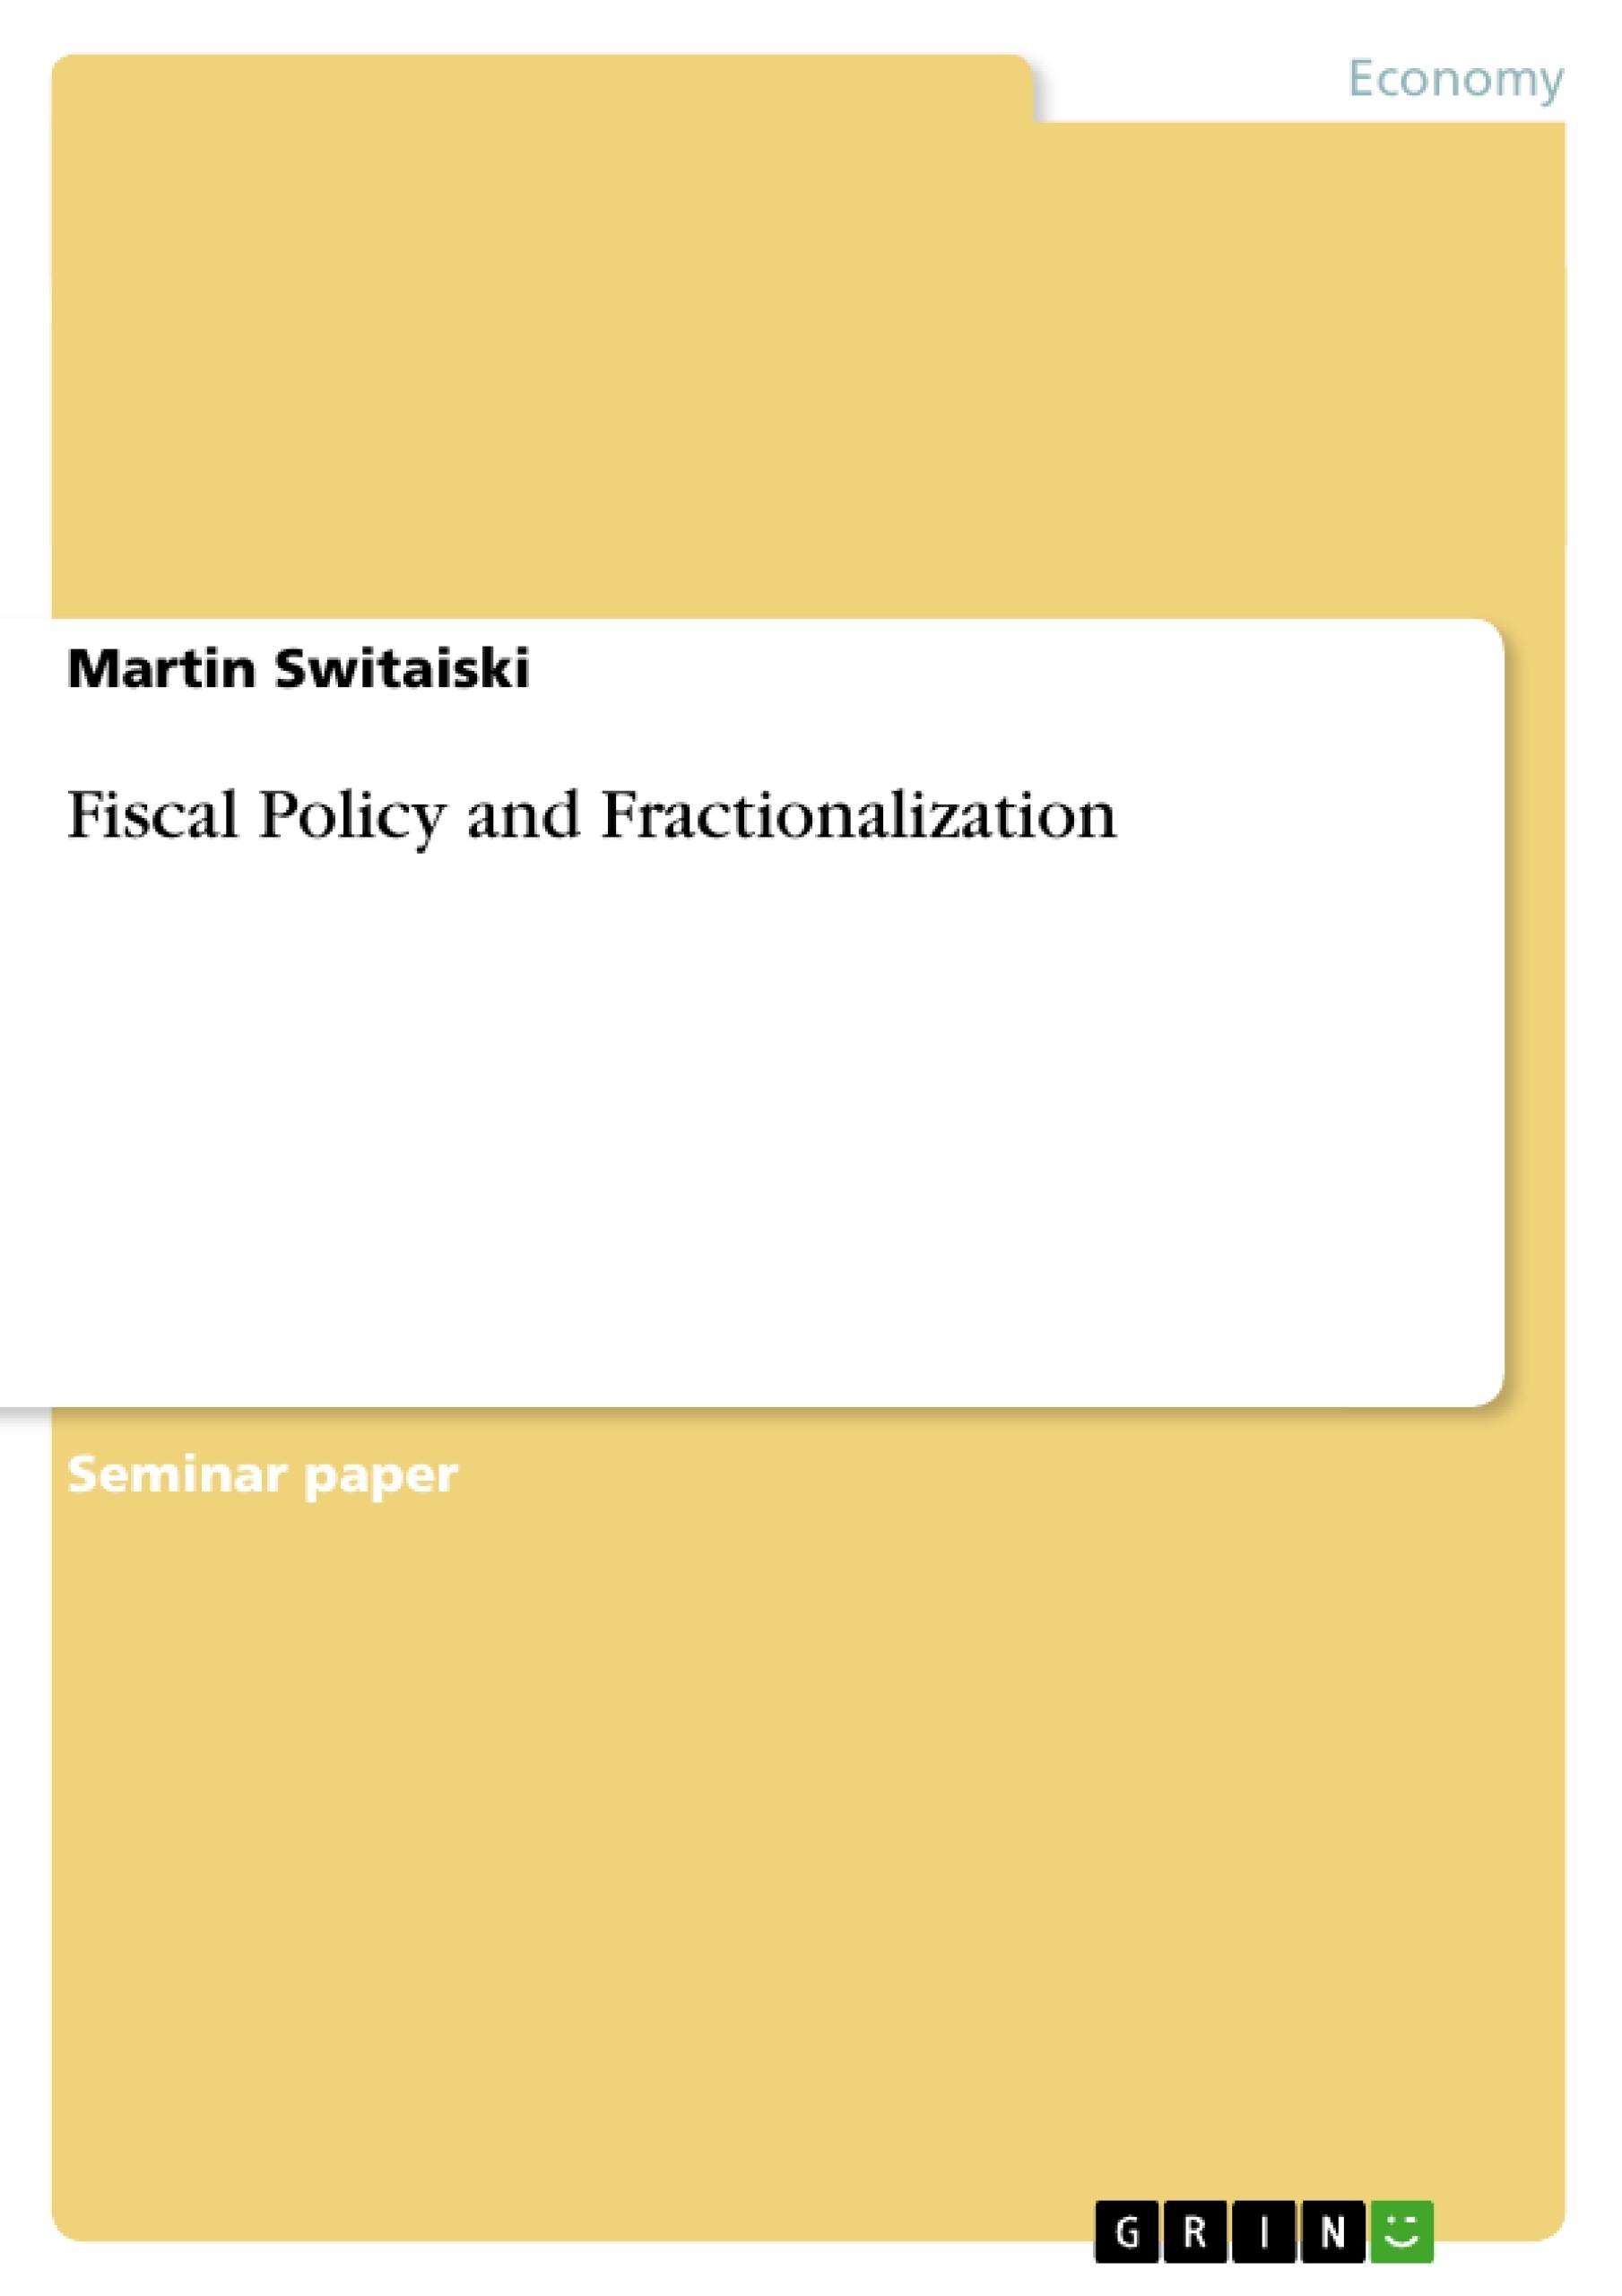 Title: Fiscal Policy and Fractionalization